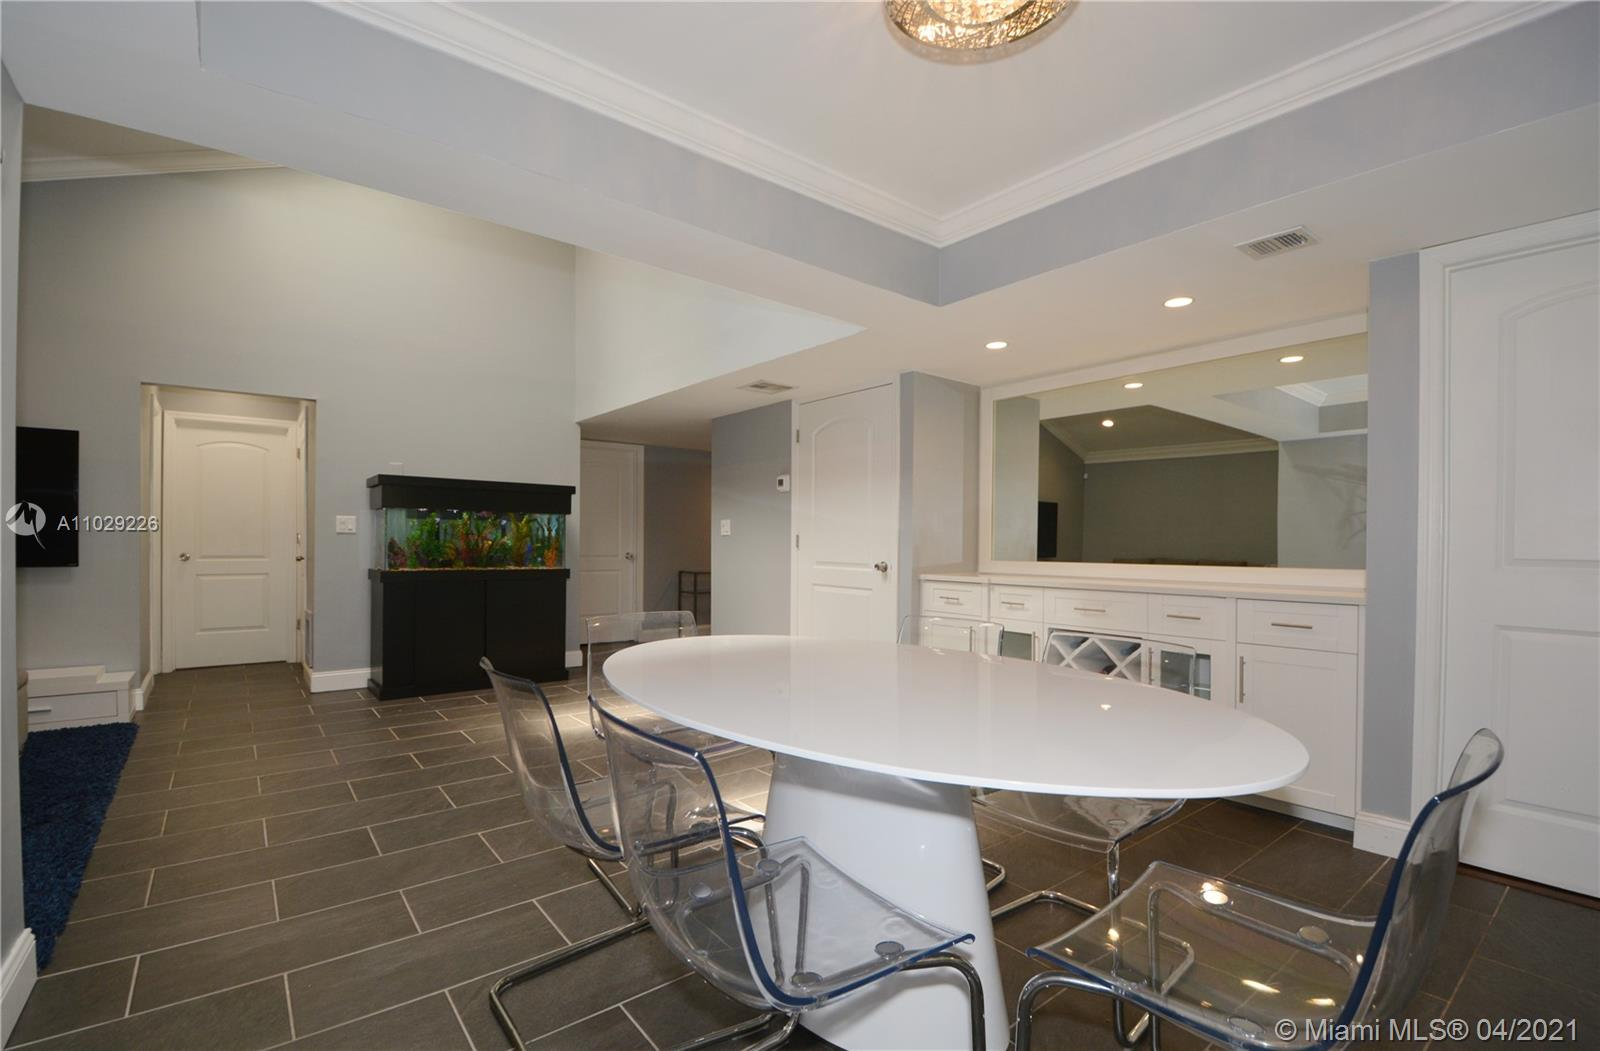 Home for sale in Hollywood Gardens Hollywood Florida